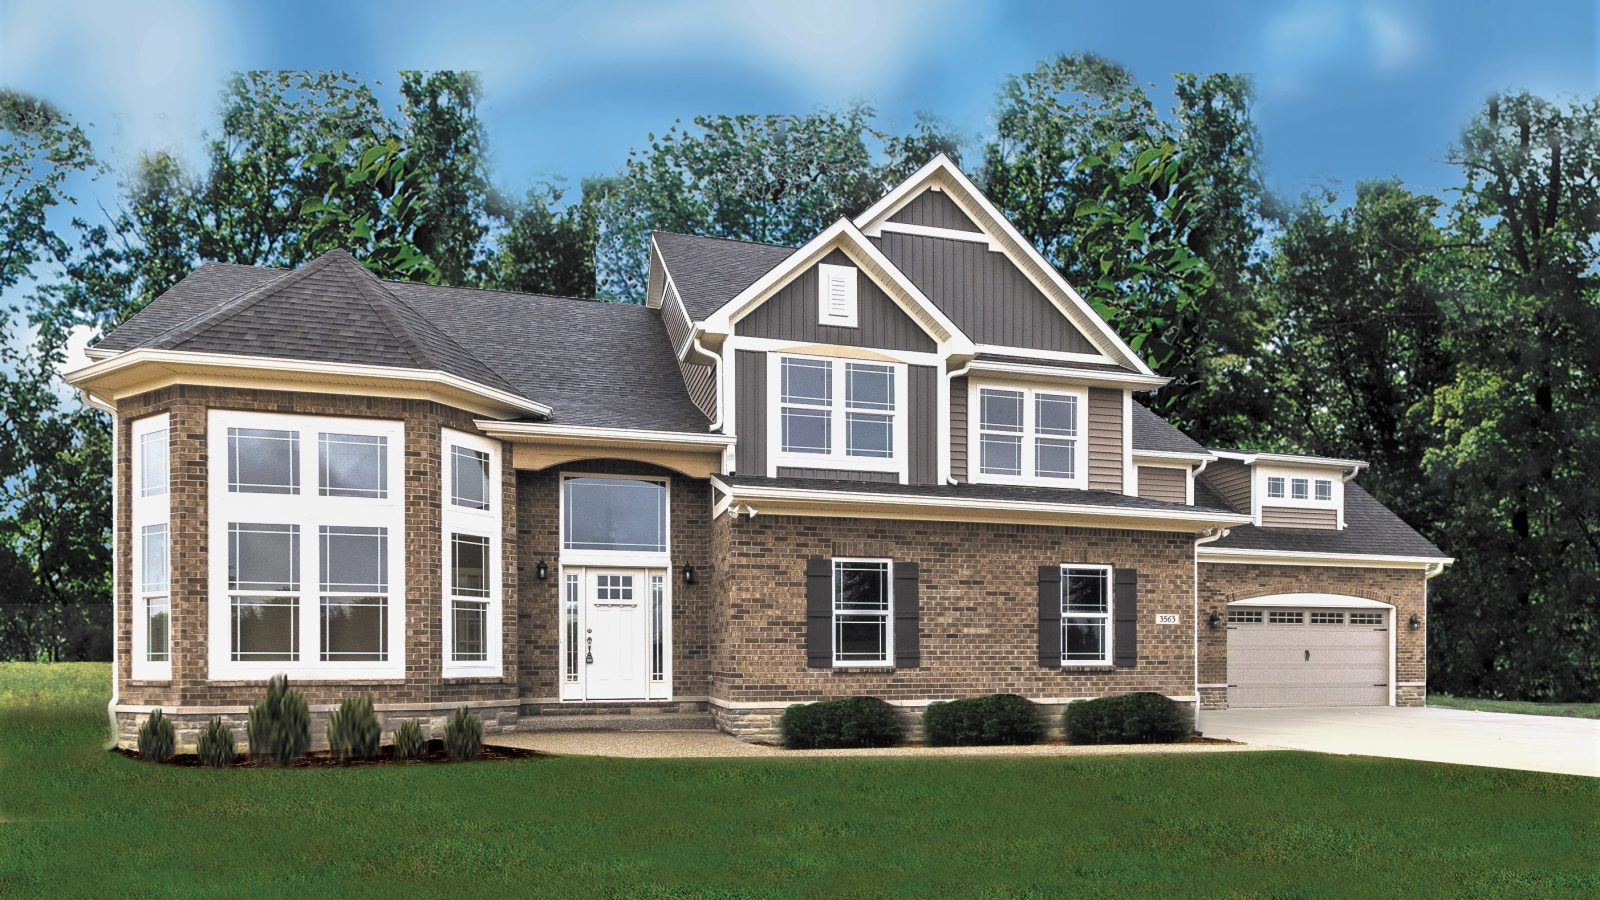 Central indiana home builder davis homes for Homebuilder com